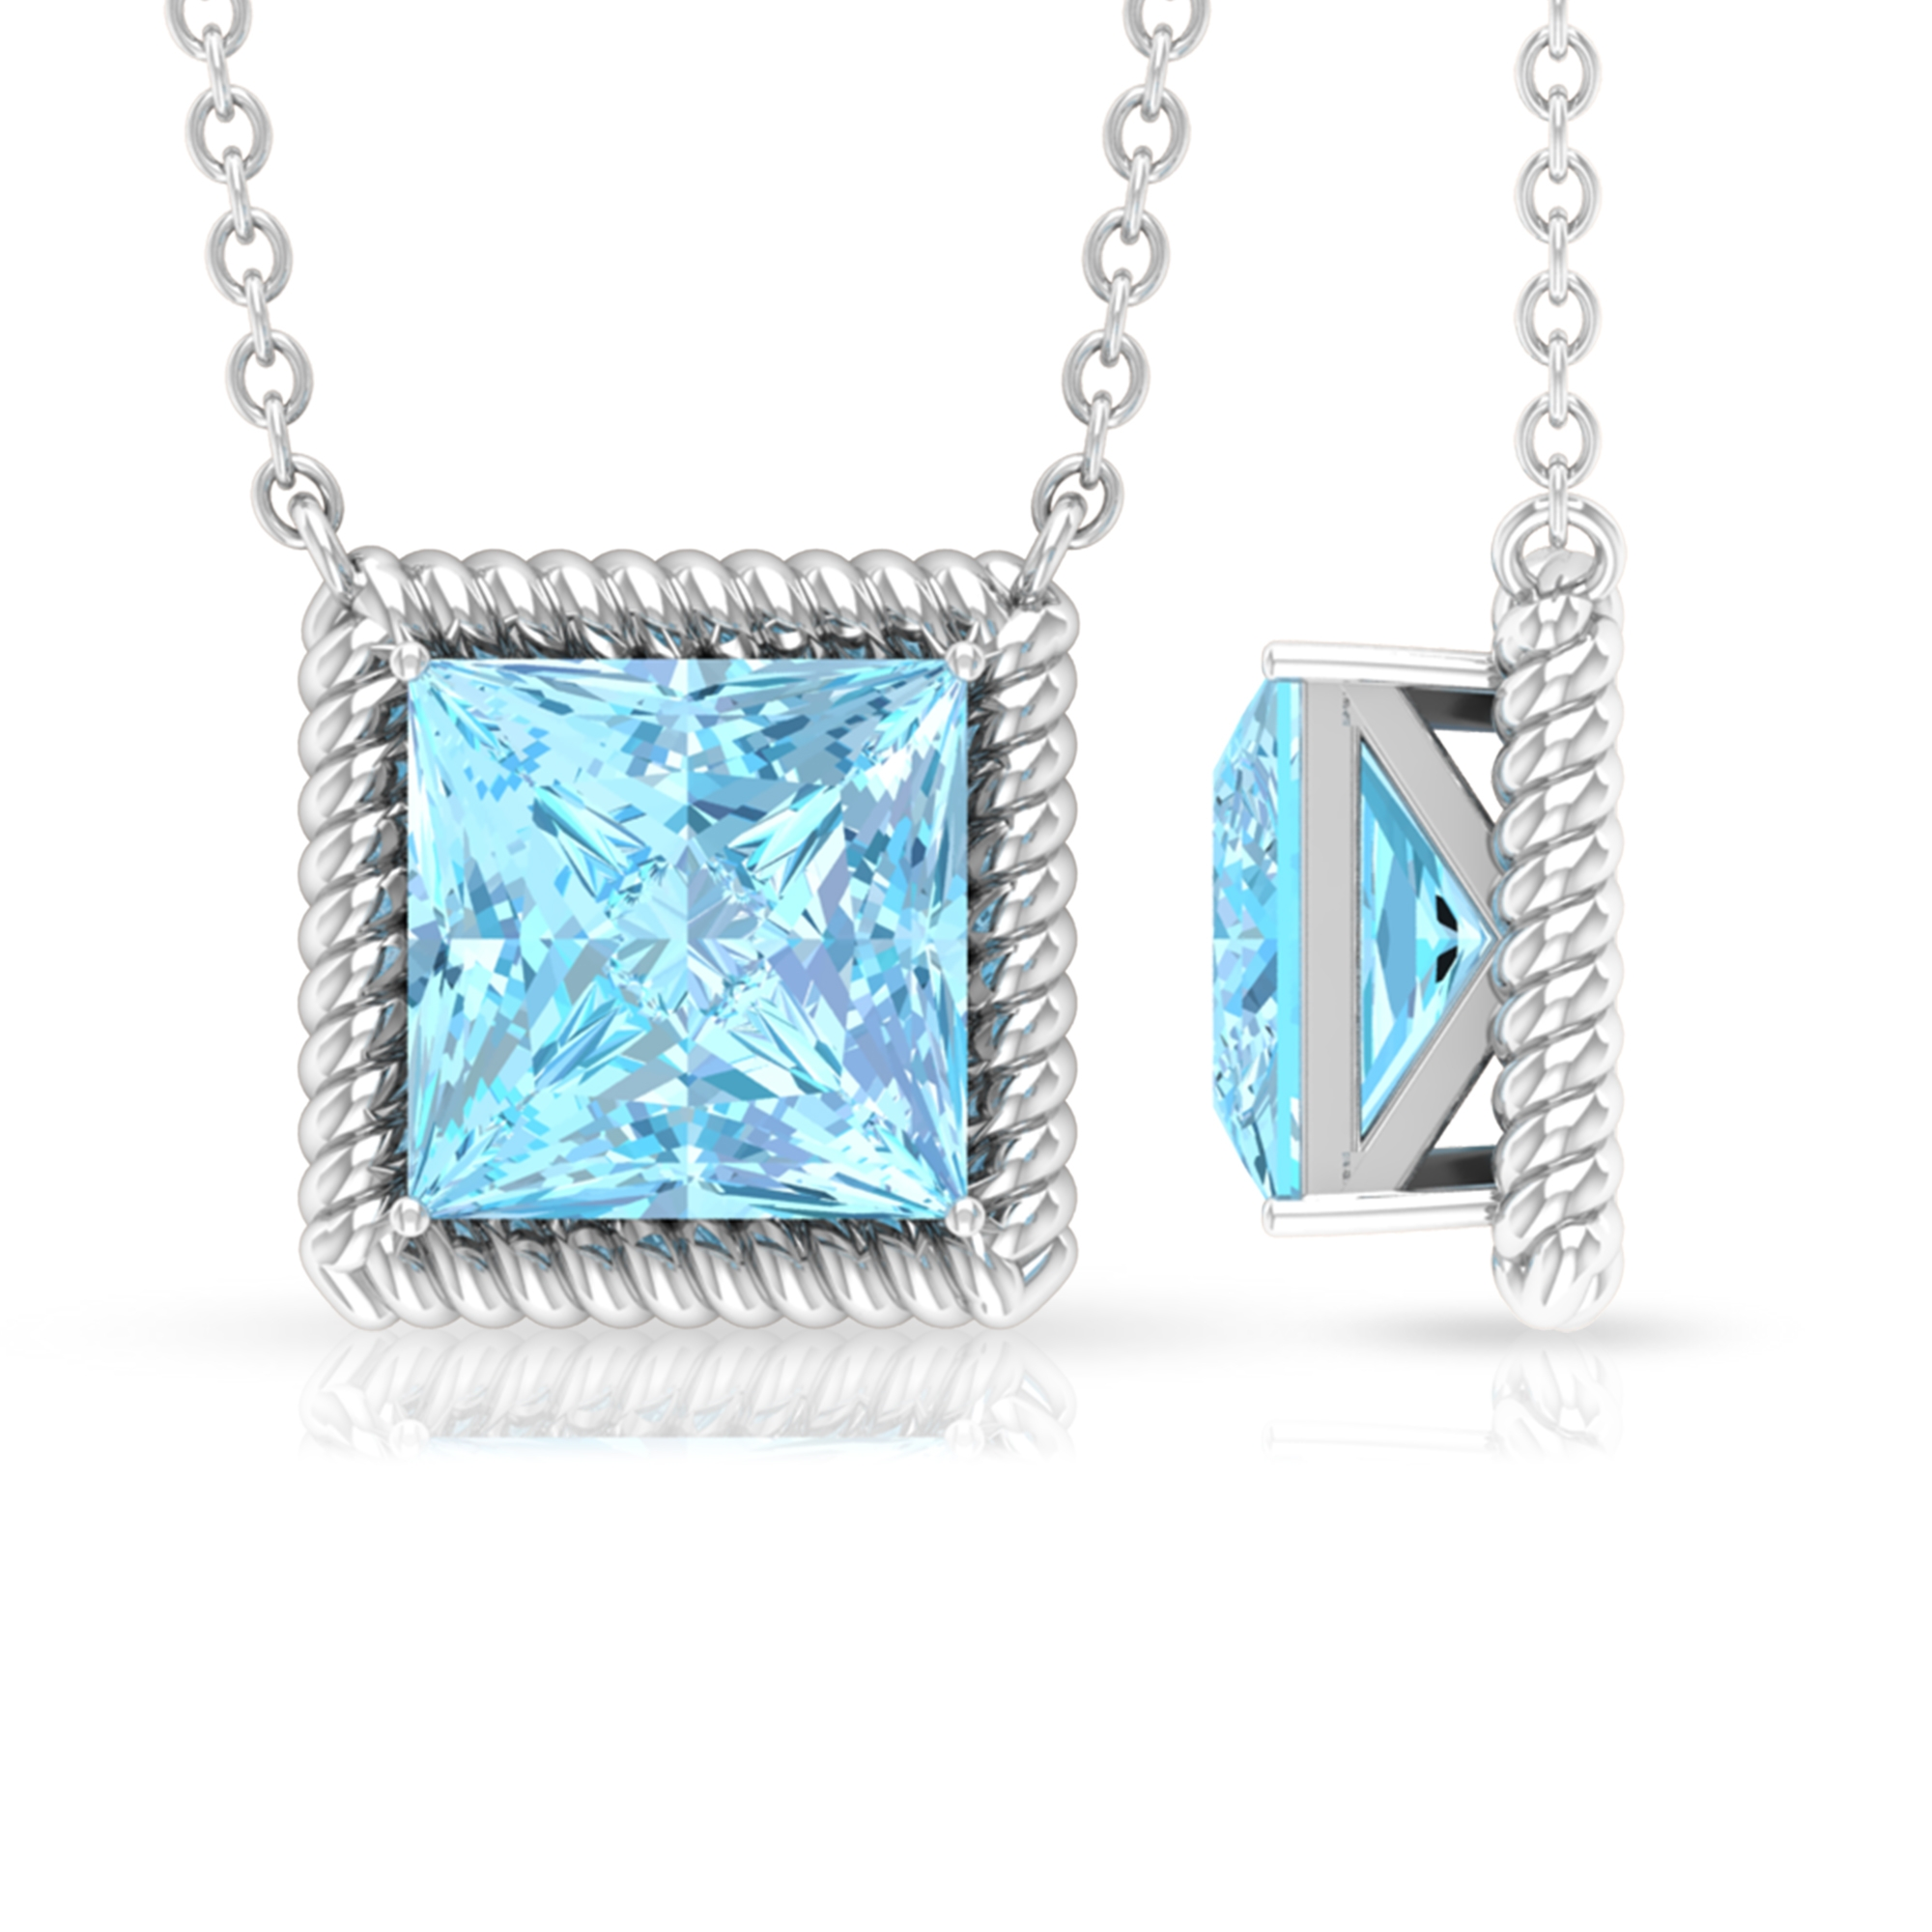 7X7 MM Princess Cut Aquamarine Solitaire Necklace in 4 Prong Setting with Twisted Rope Frame